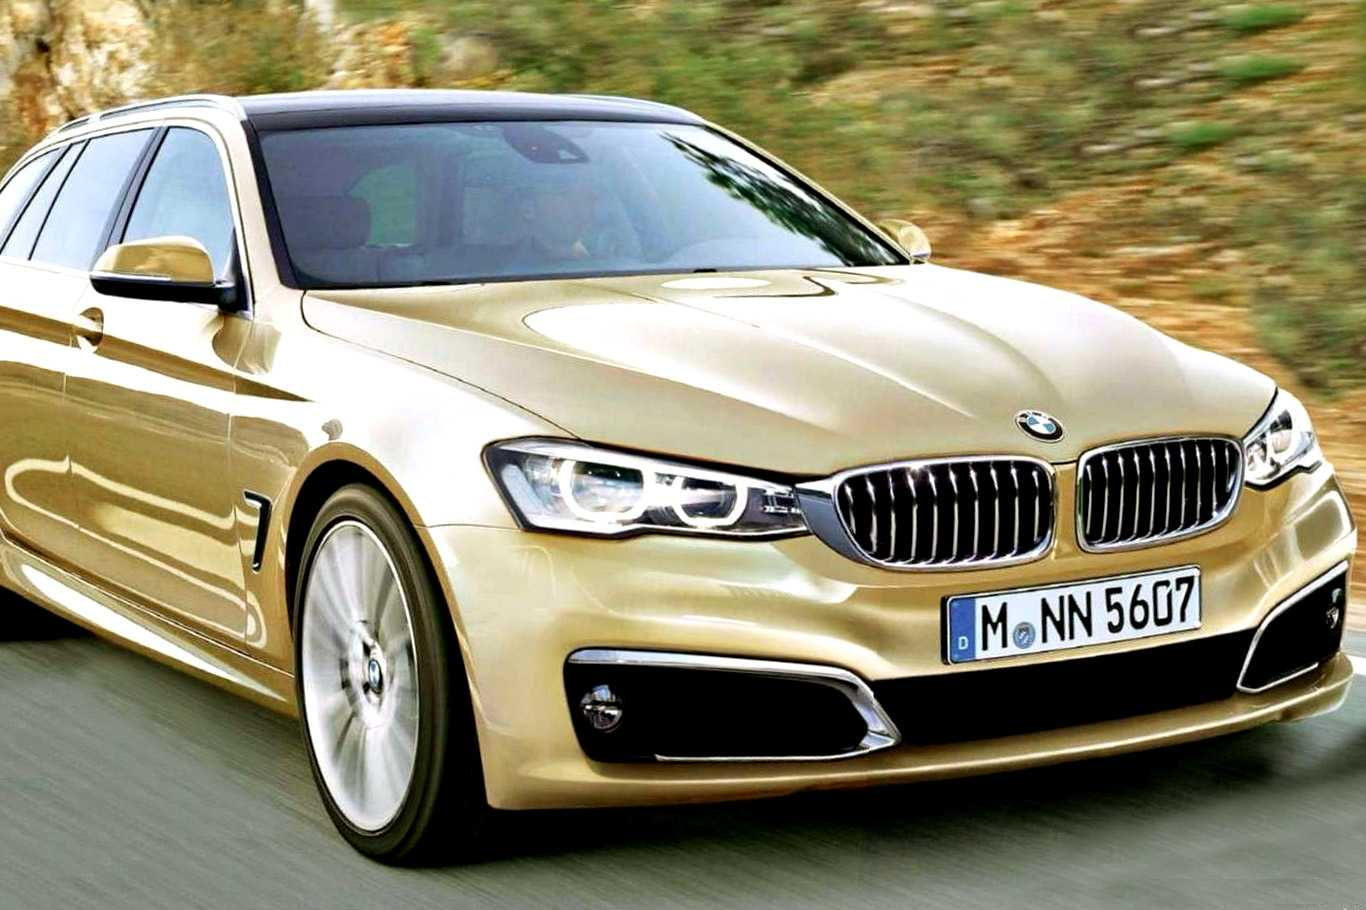 2017 BMW G30 5 Series Breaks 7 Year Cycle, New Tech Lands Much Earlier